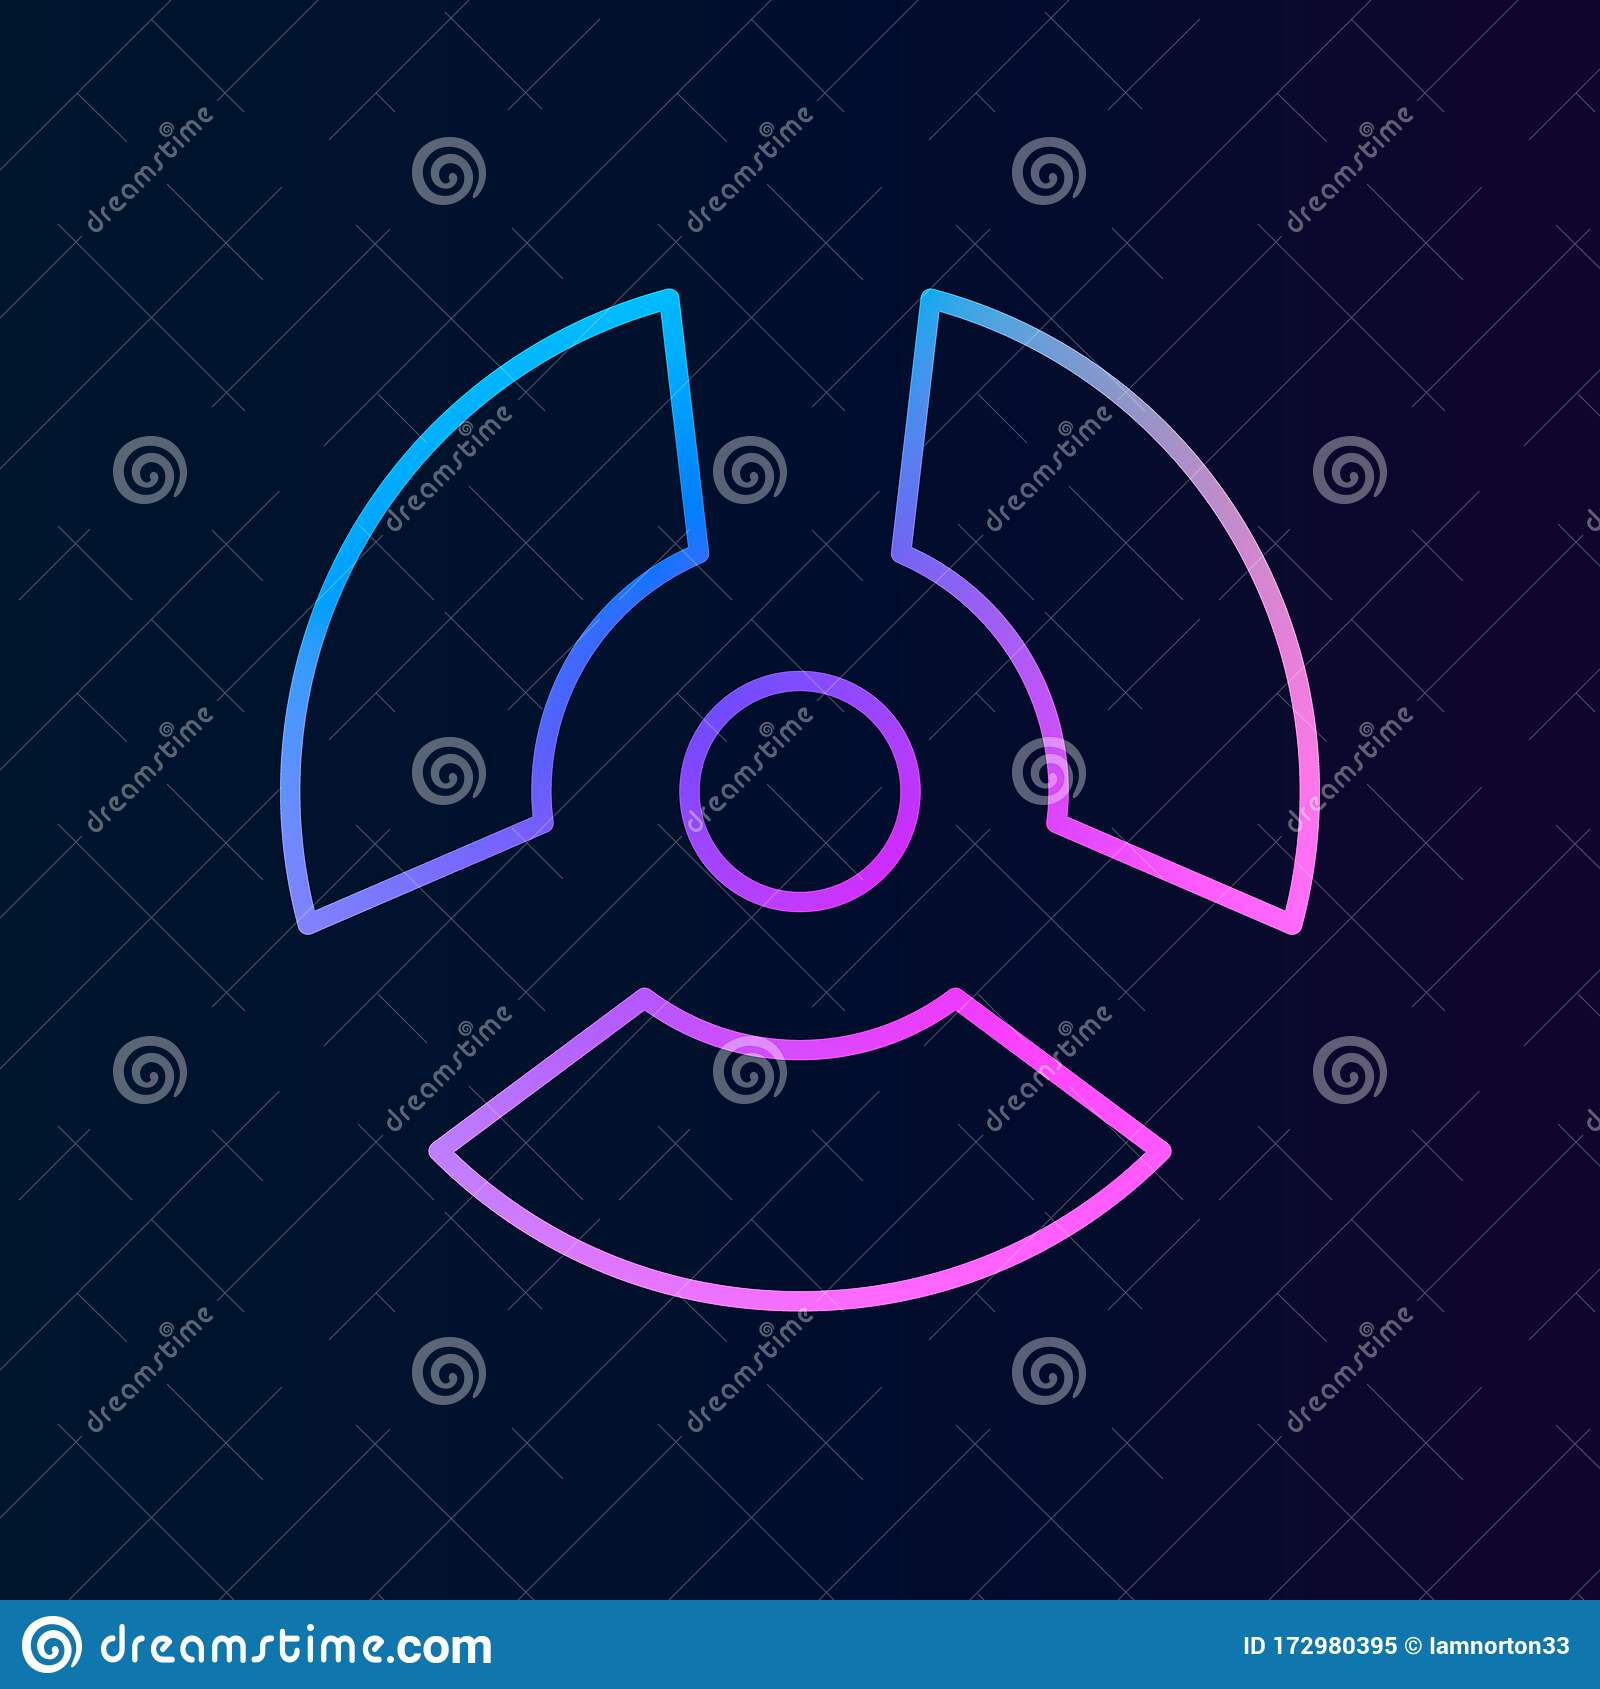 nuclear energy nolan icon simple thin line outline vector of biologyicons for ui and ux website or mobile application stock illustration illustration of symbol stylized 172980395 dreamstime com